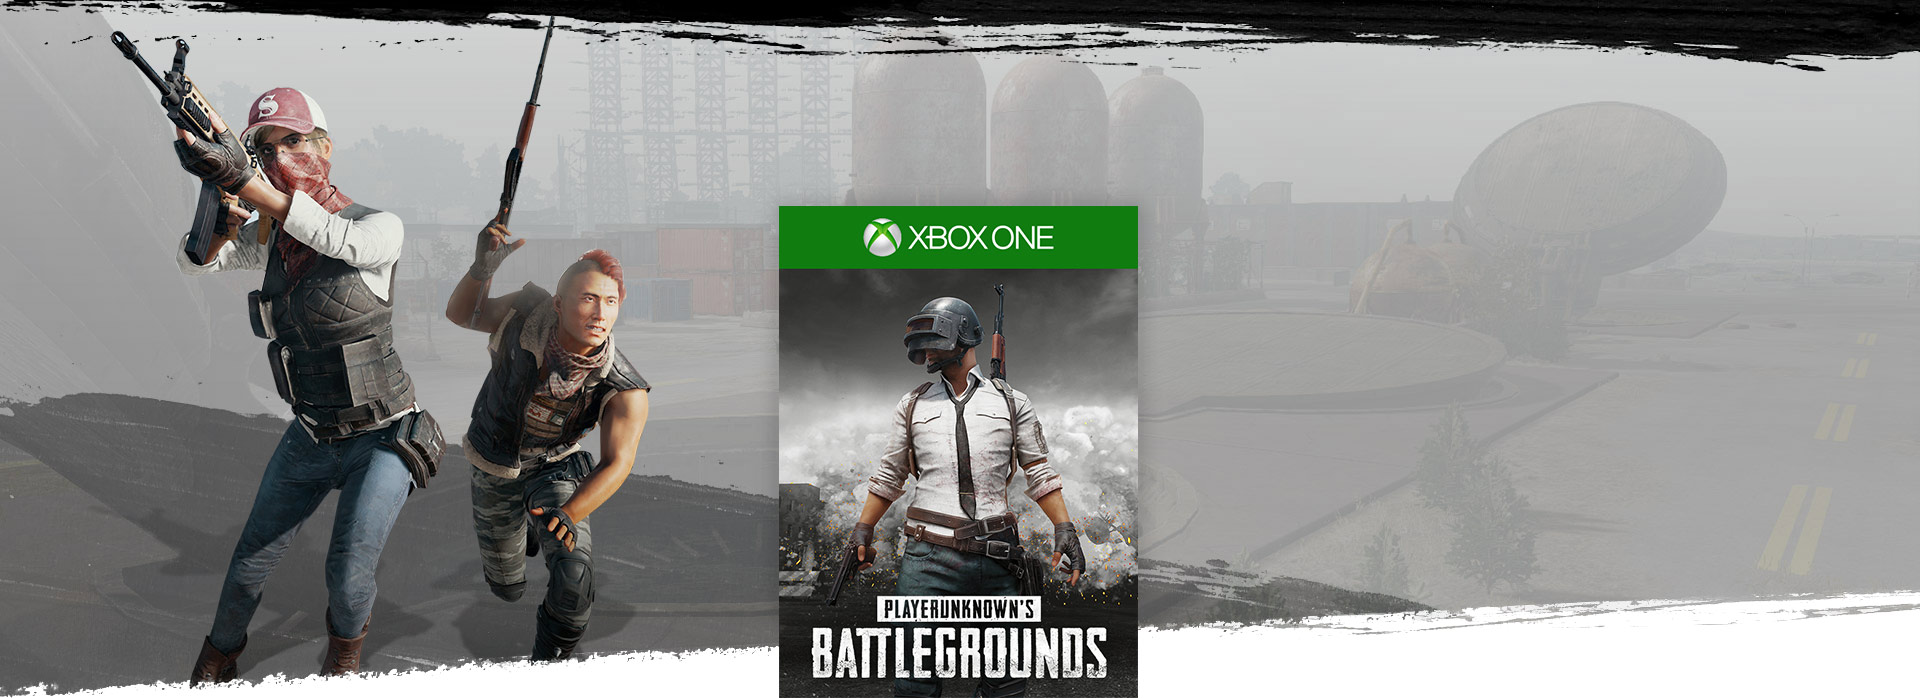 Playerunknowns Battlegrounds boxshot, with background image of two weapon wielding characters with military base in the background